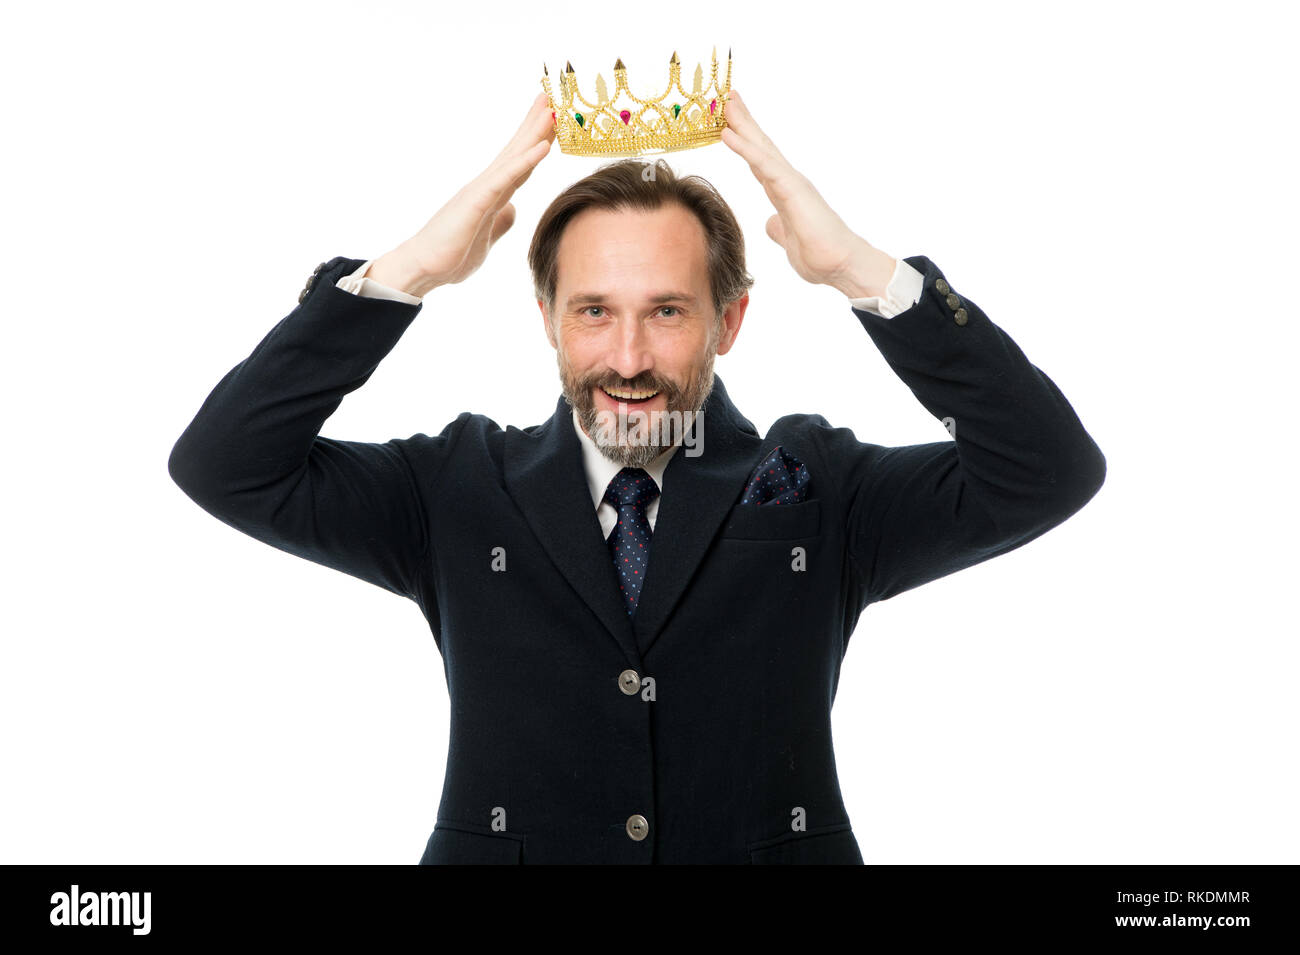 Become next king. Monarchy family traditions. Man nature bearded guy in suit hold golden crown symbol of monarchy. Direct line to throne. Enormous privilege. Become king ceremony. King attribute. - Stock Image